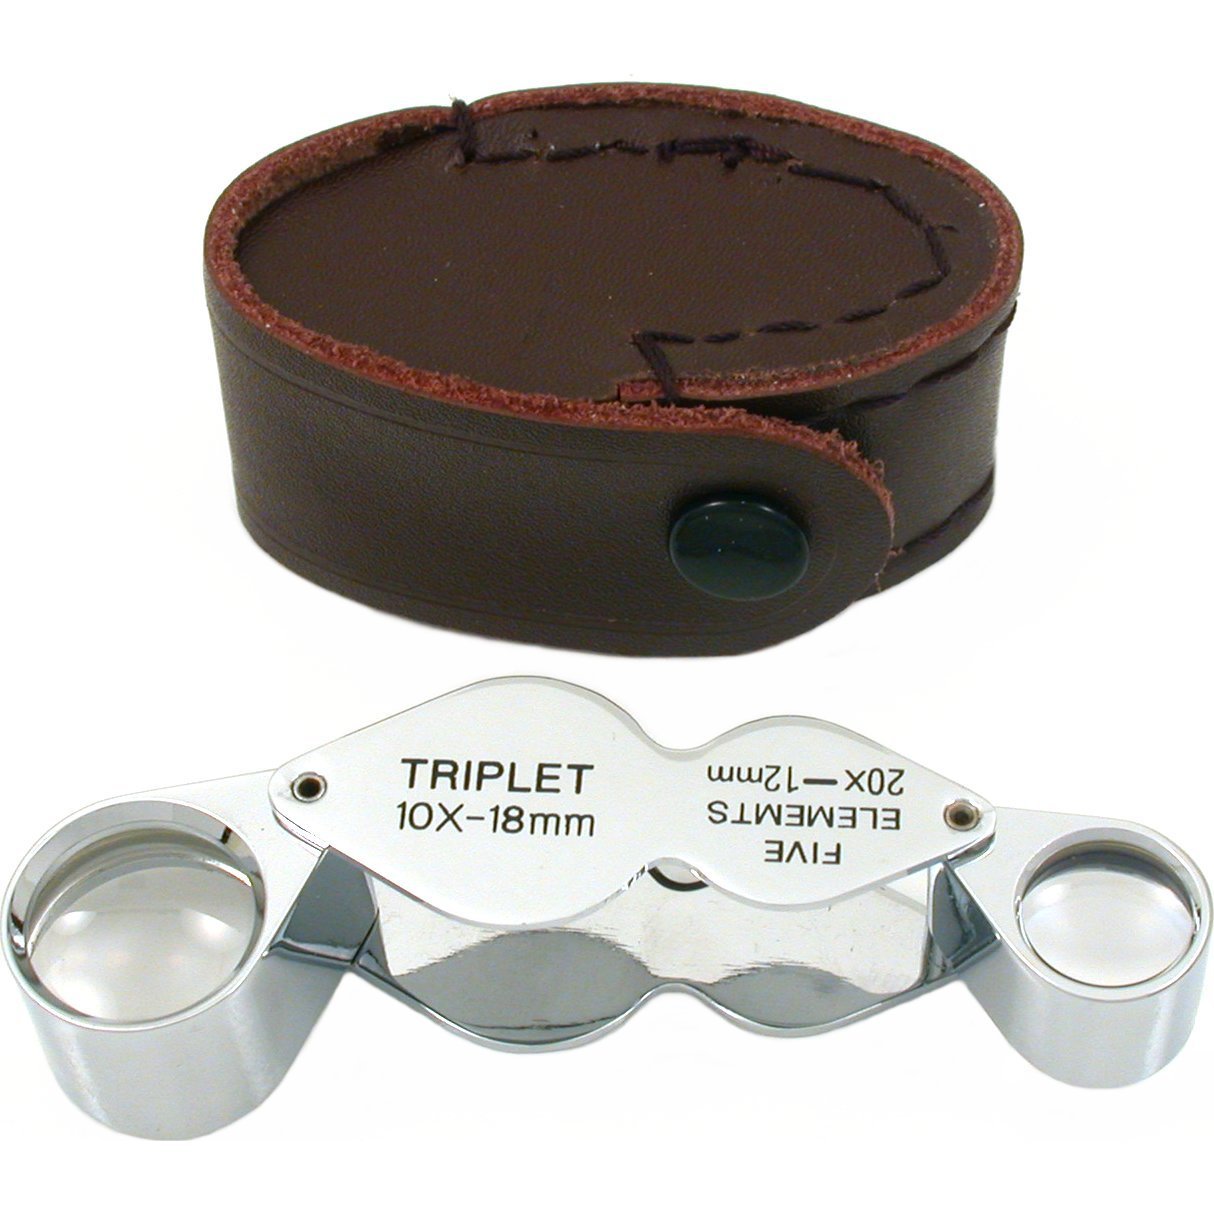 Premium Quality Jeweler's 2-in-1 Eye Loupe 10X 20X - Triplet & Five Elements - Chrome-Plated Brass Jeweler's Tools FBA_101530